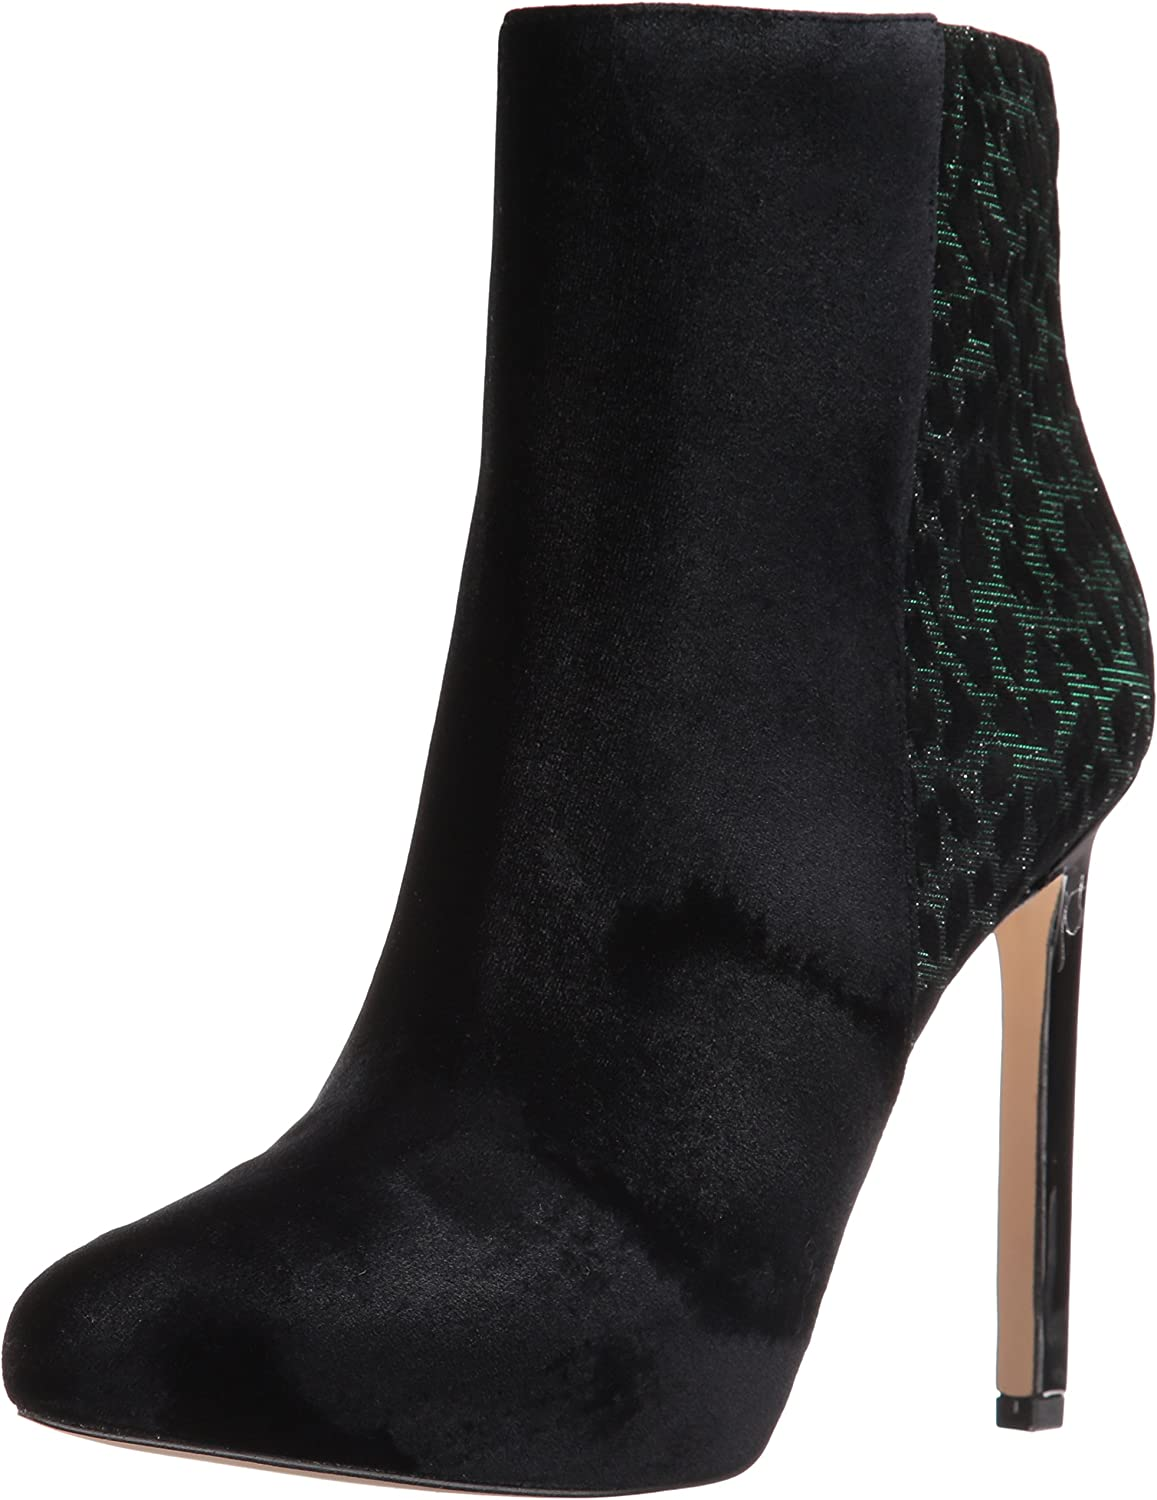 Nine West Womens Ladivina Fabric Ankle Bootie